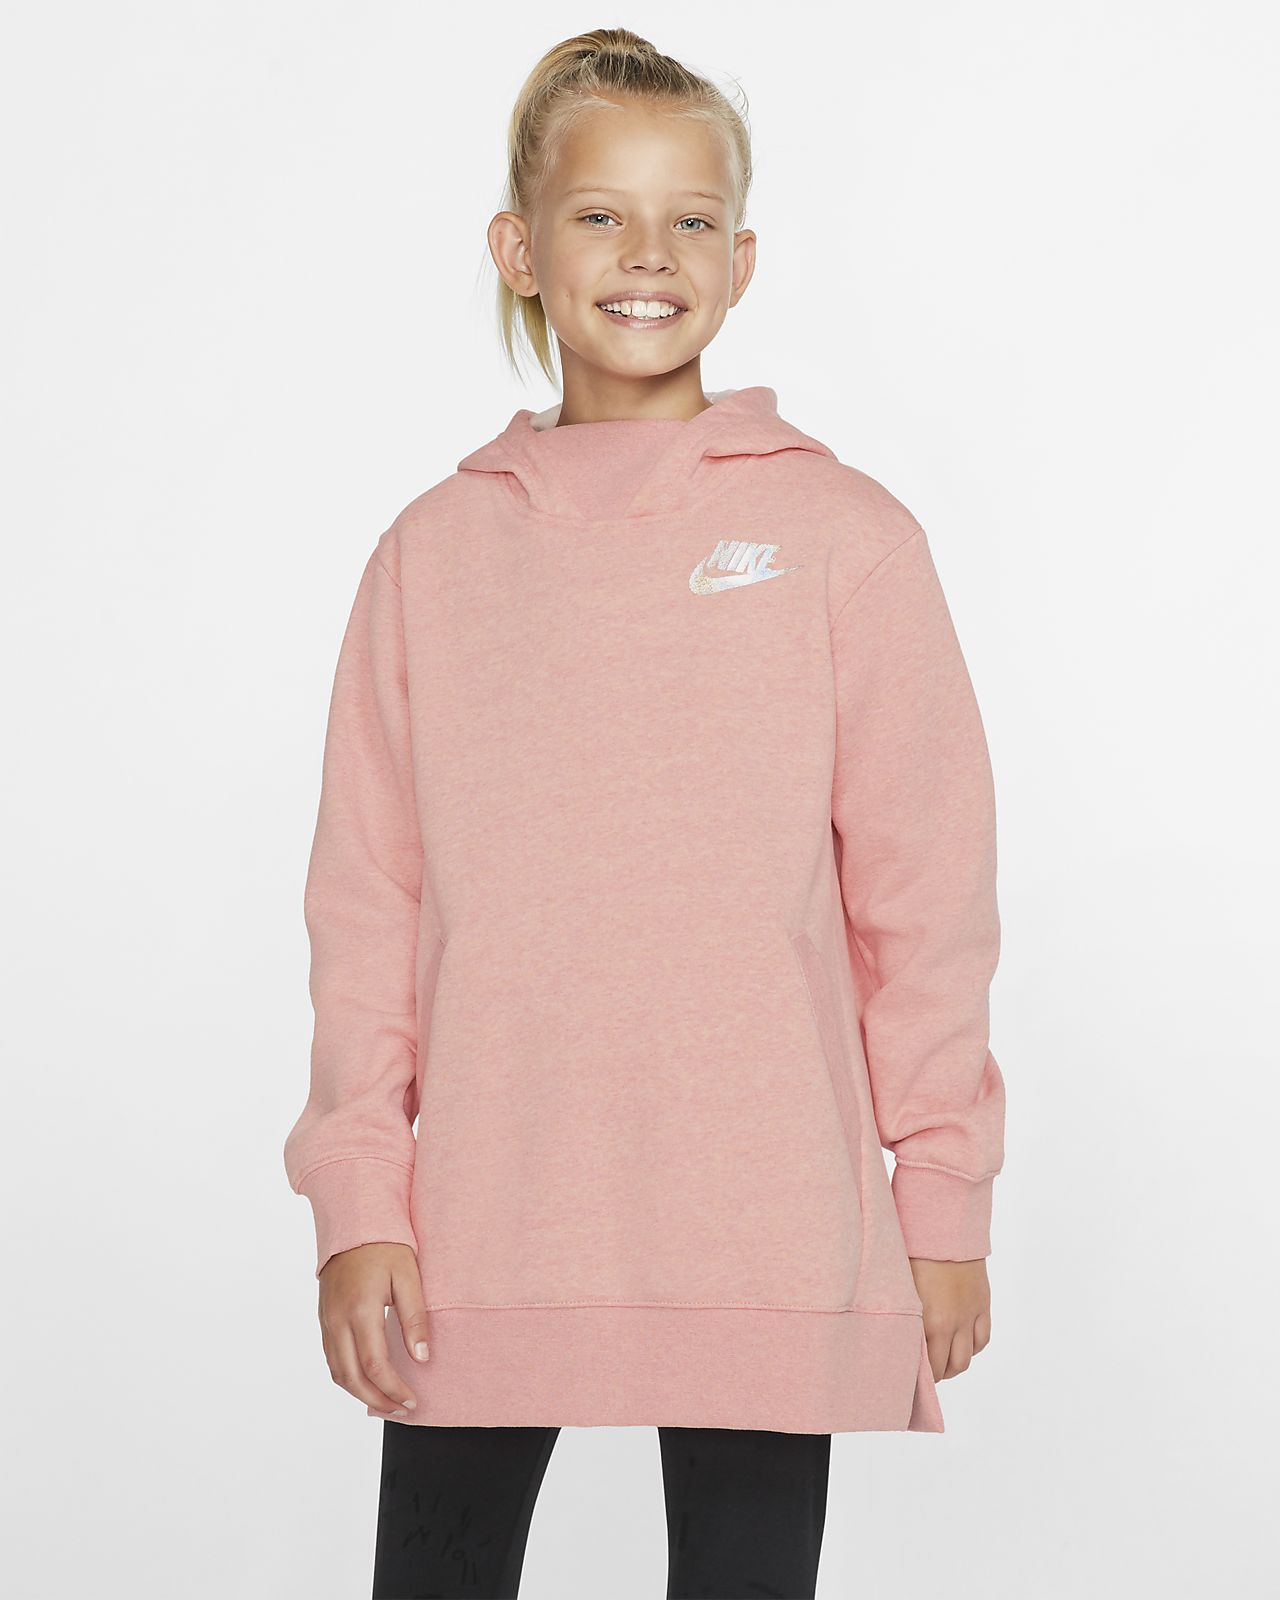 Nike Sportswear Older Kids' (Girls') Fleece Top